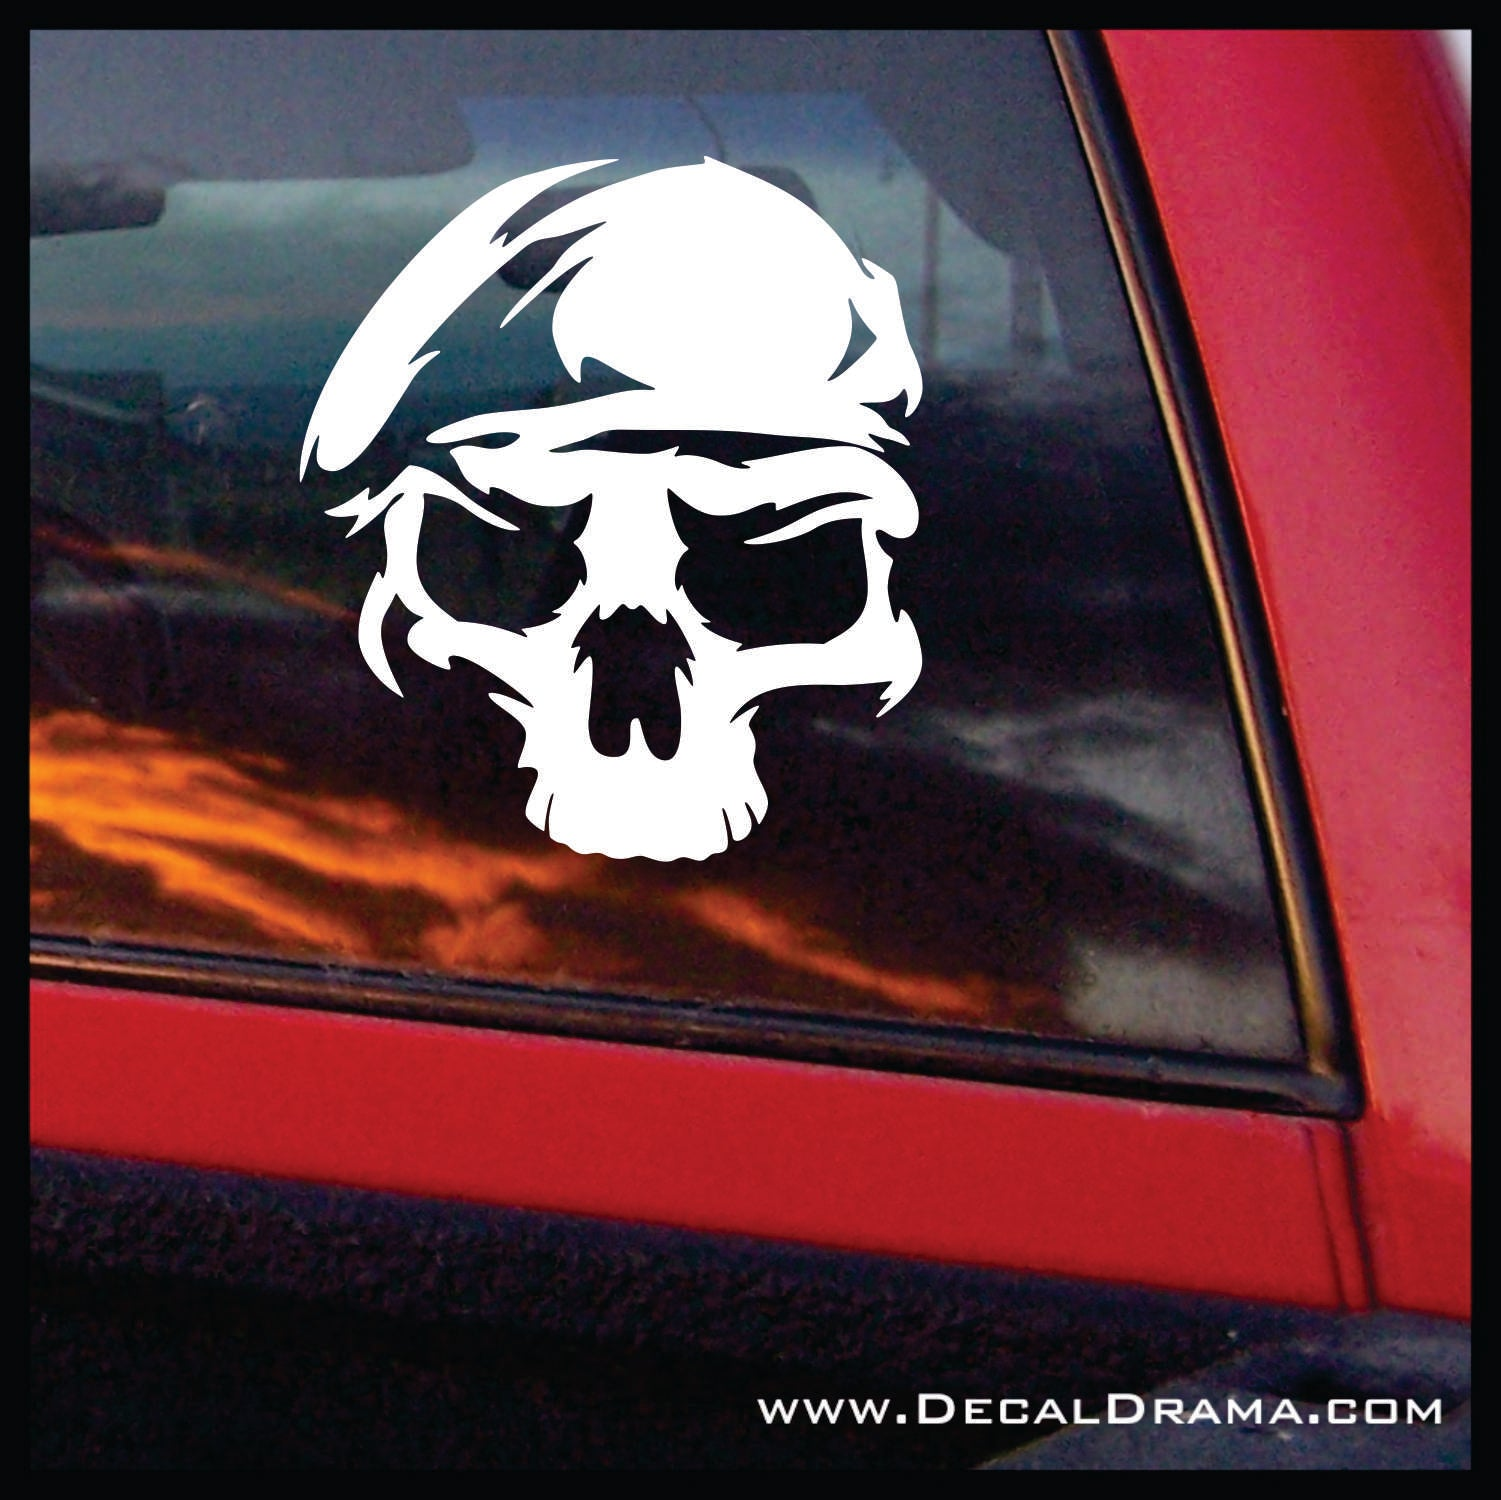 US Army Ranger Skull, United States Armed Forces Vinyl Car/Laptop Decal